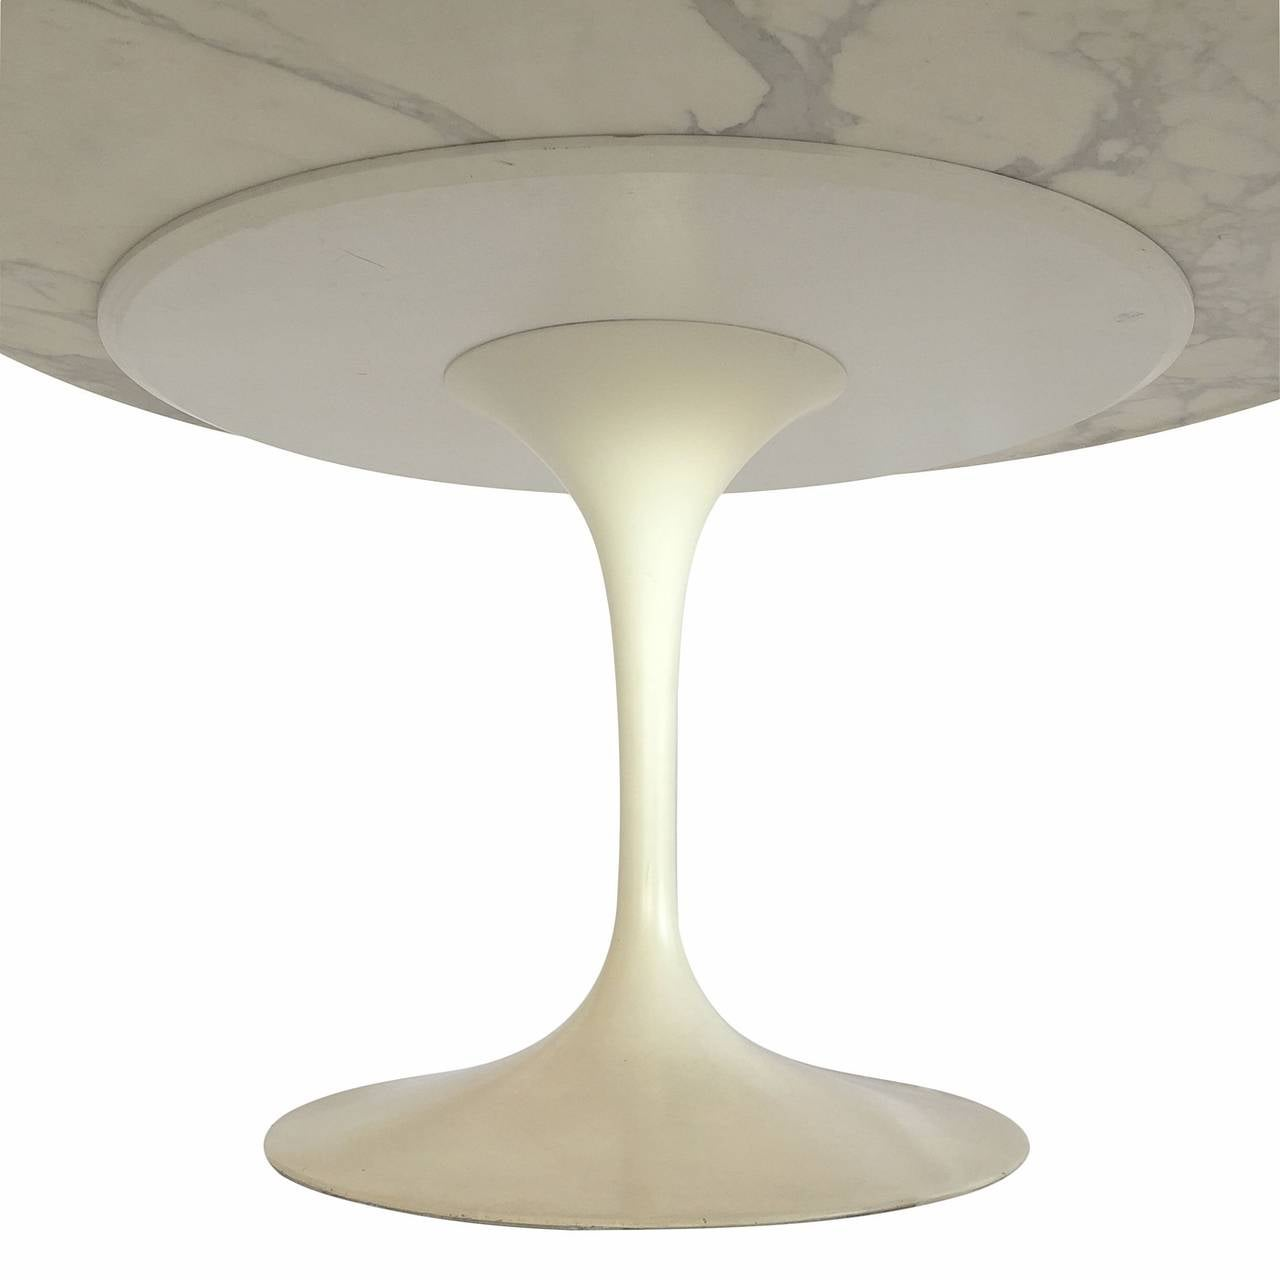 Eero Saarinen Marble Top Tulip Table At 1stdibs